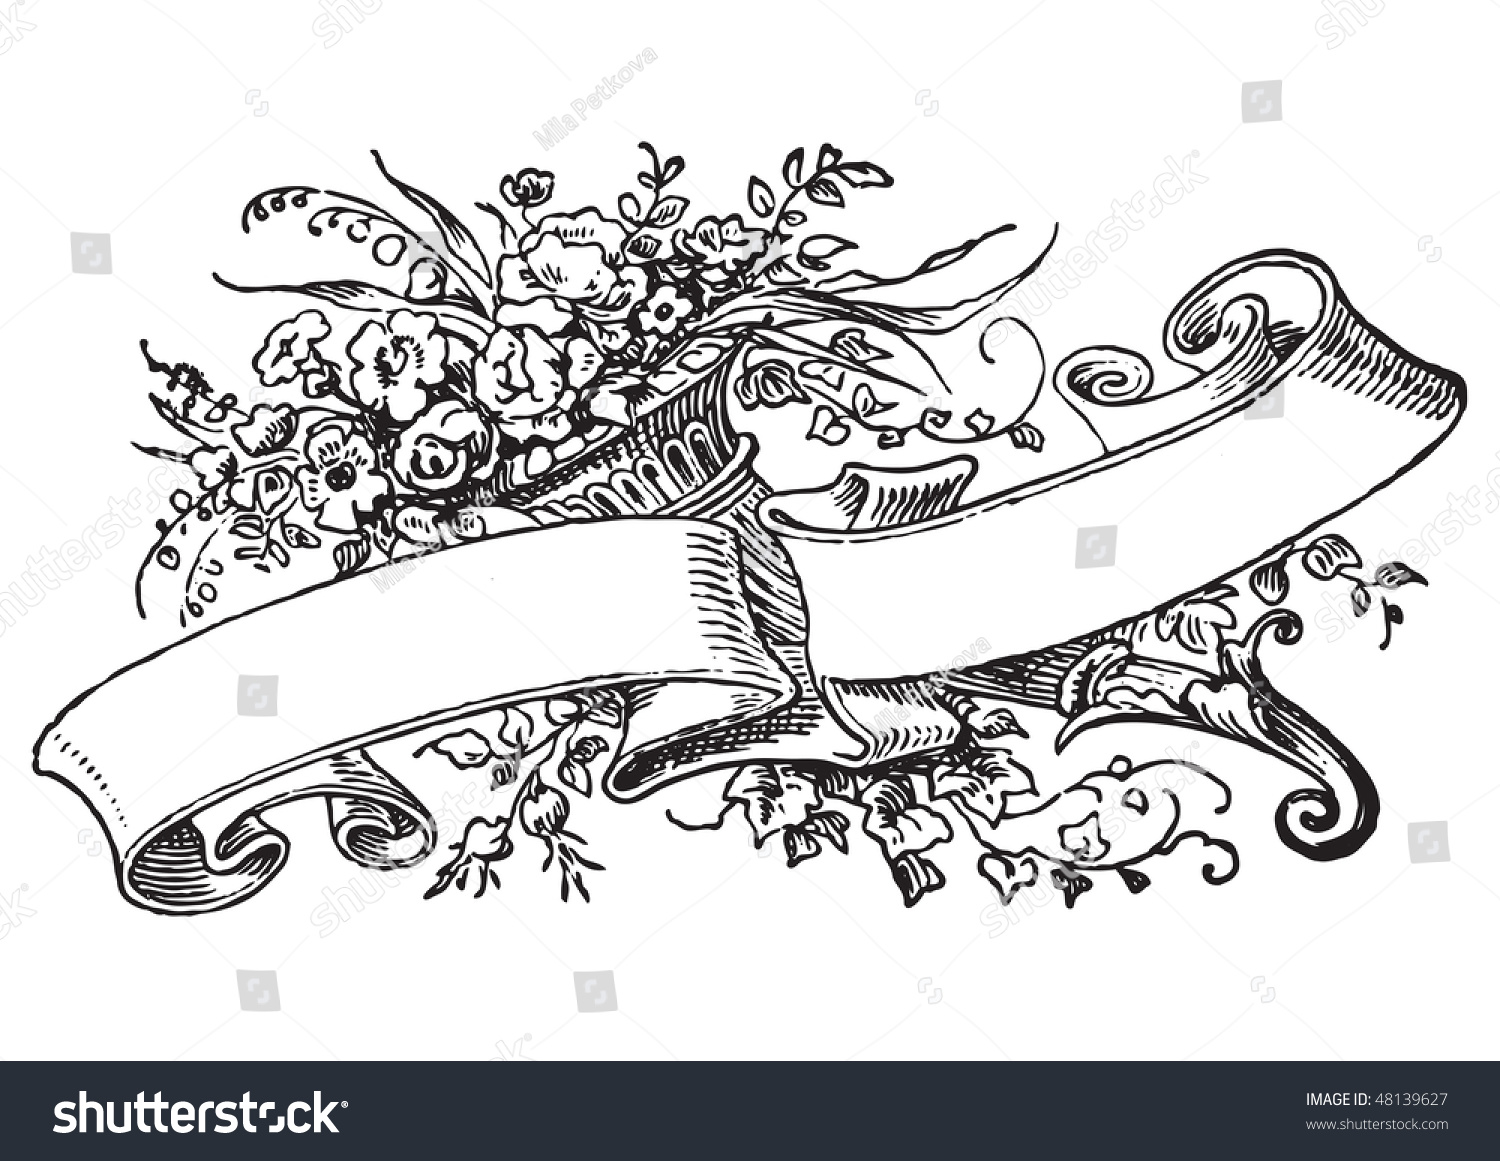 antique frame engraving scalable and editable vector illustration